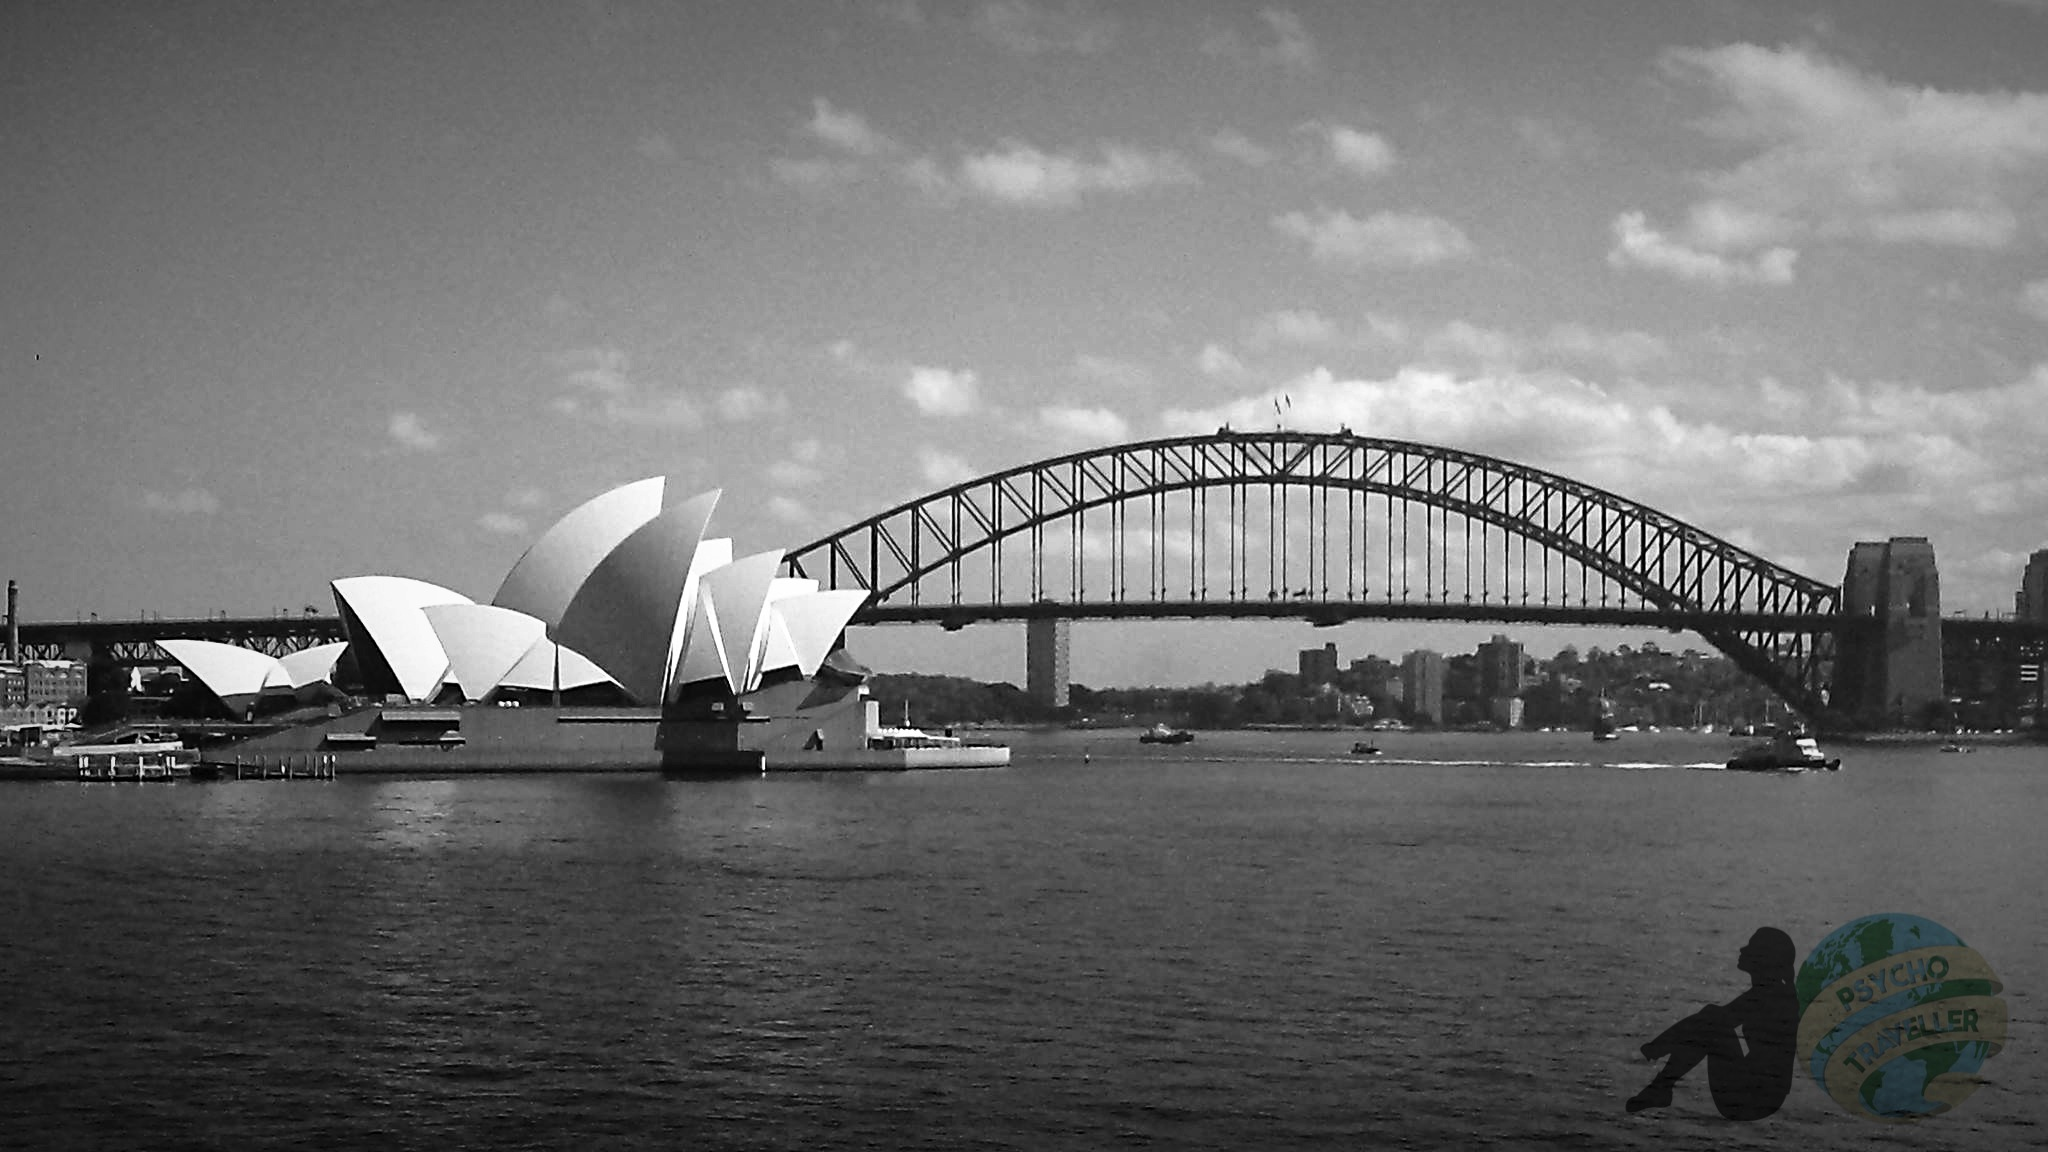 1274702 10153151721865316 196060524 o Fotor - Download Pictures Of Sydney Opera House And Harbour Bridge  PNG